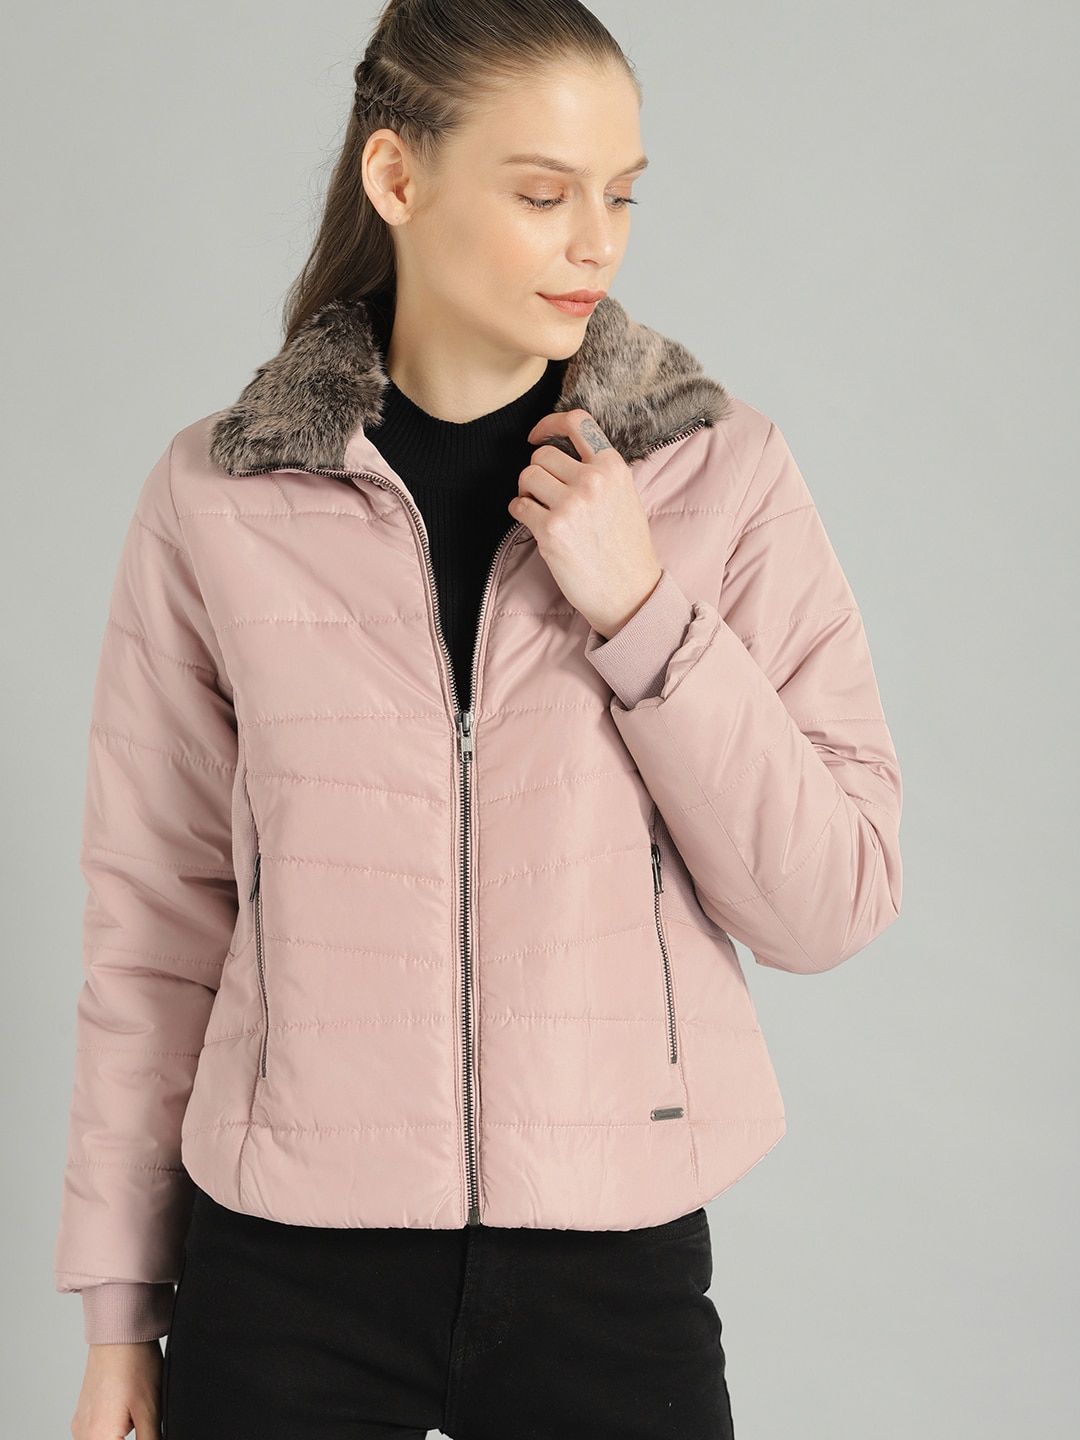 Roadster Women Pink Solid Puffer Jacket-9479135